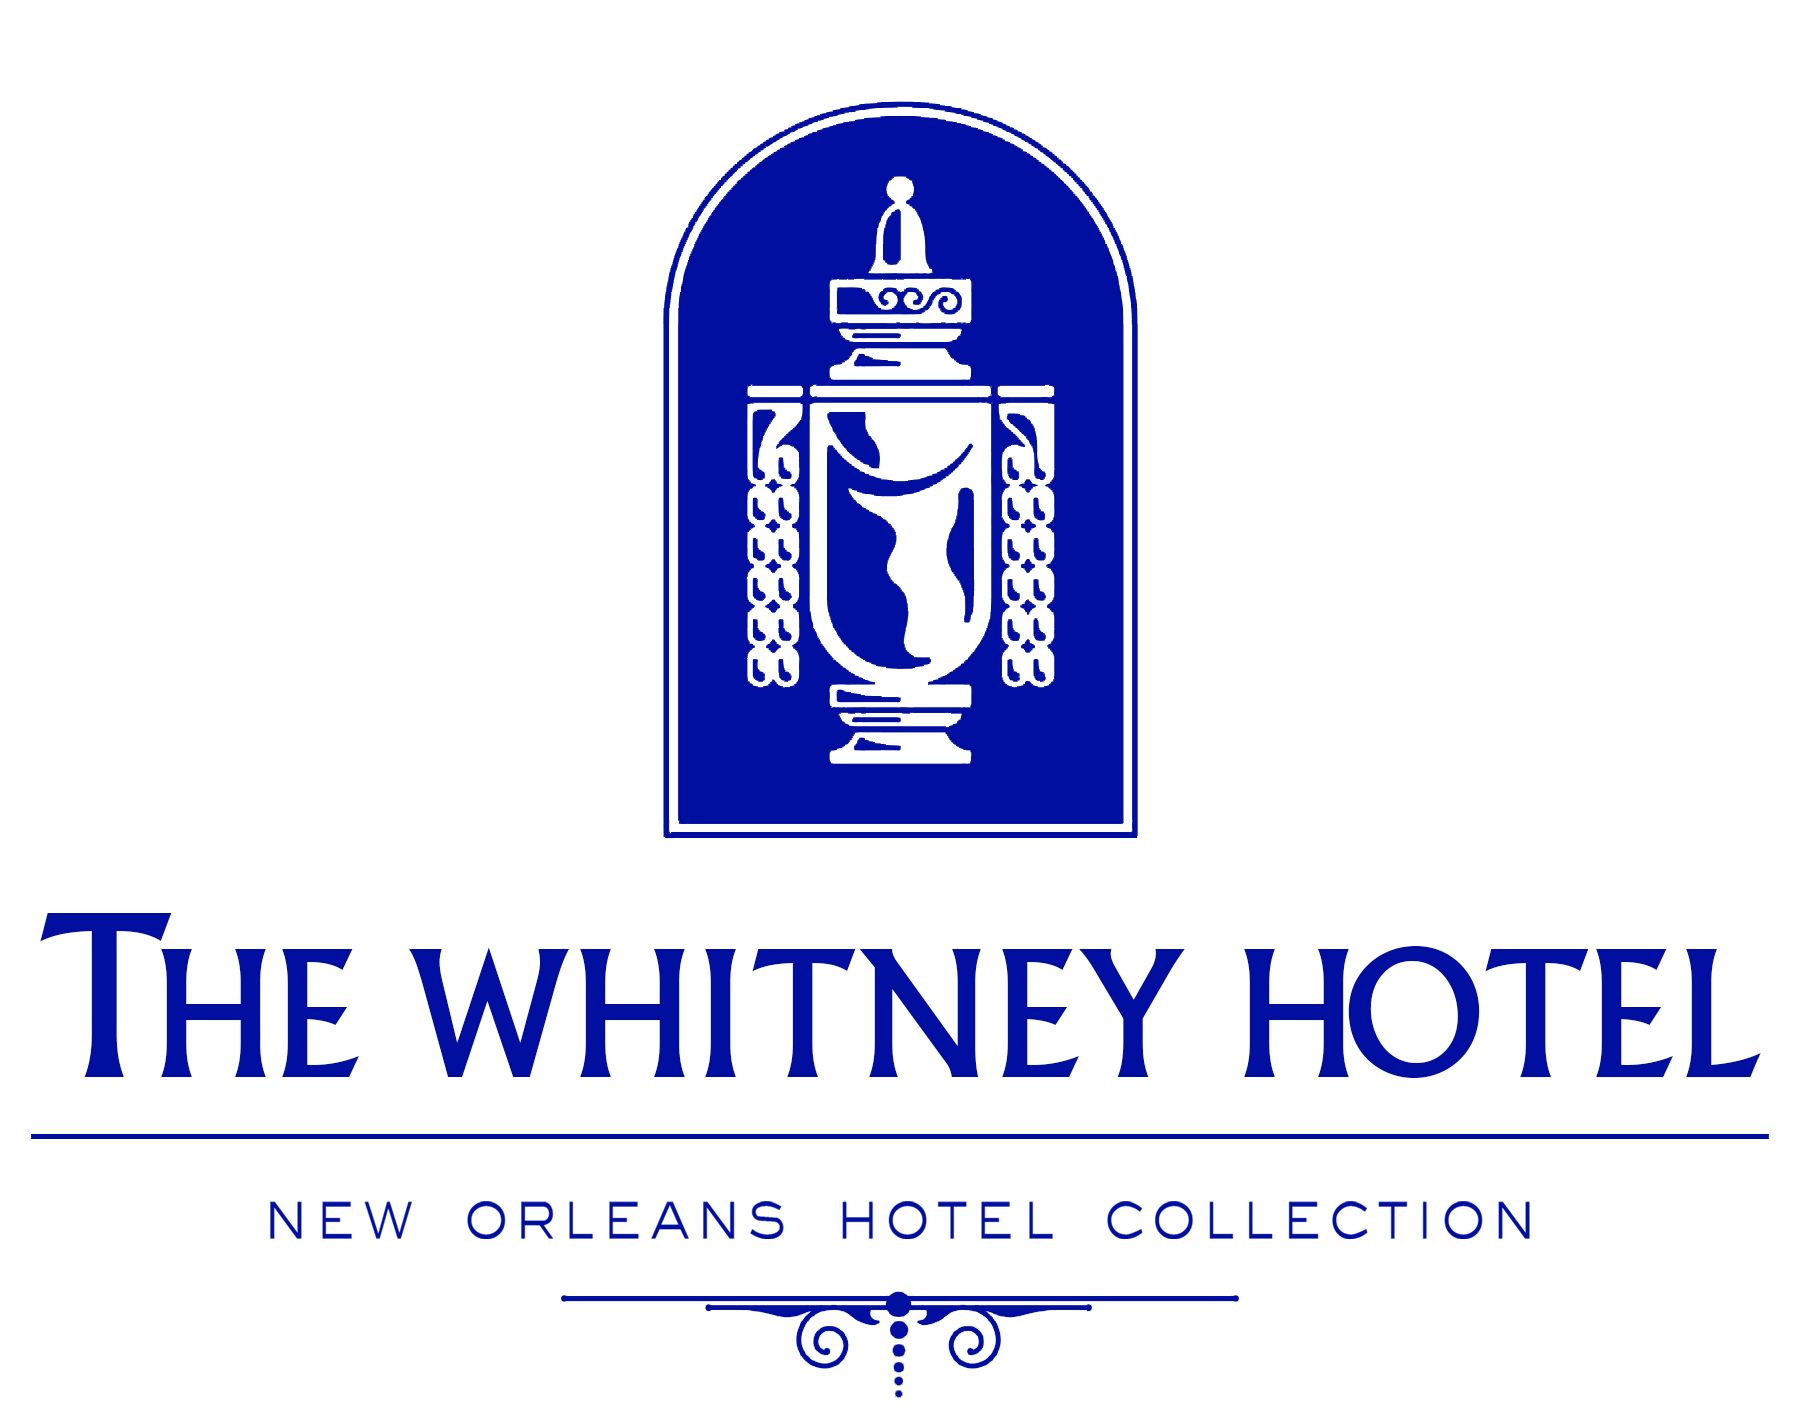 The Whitney Hotel